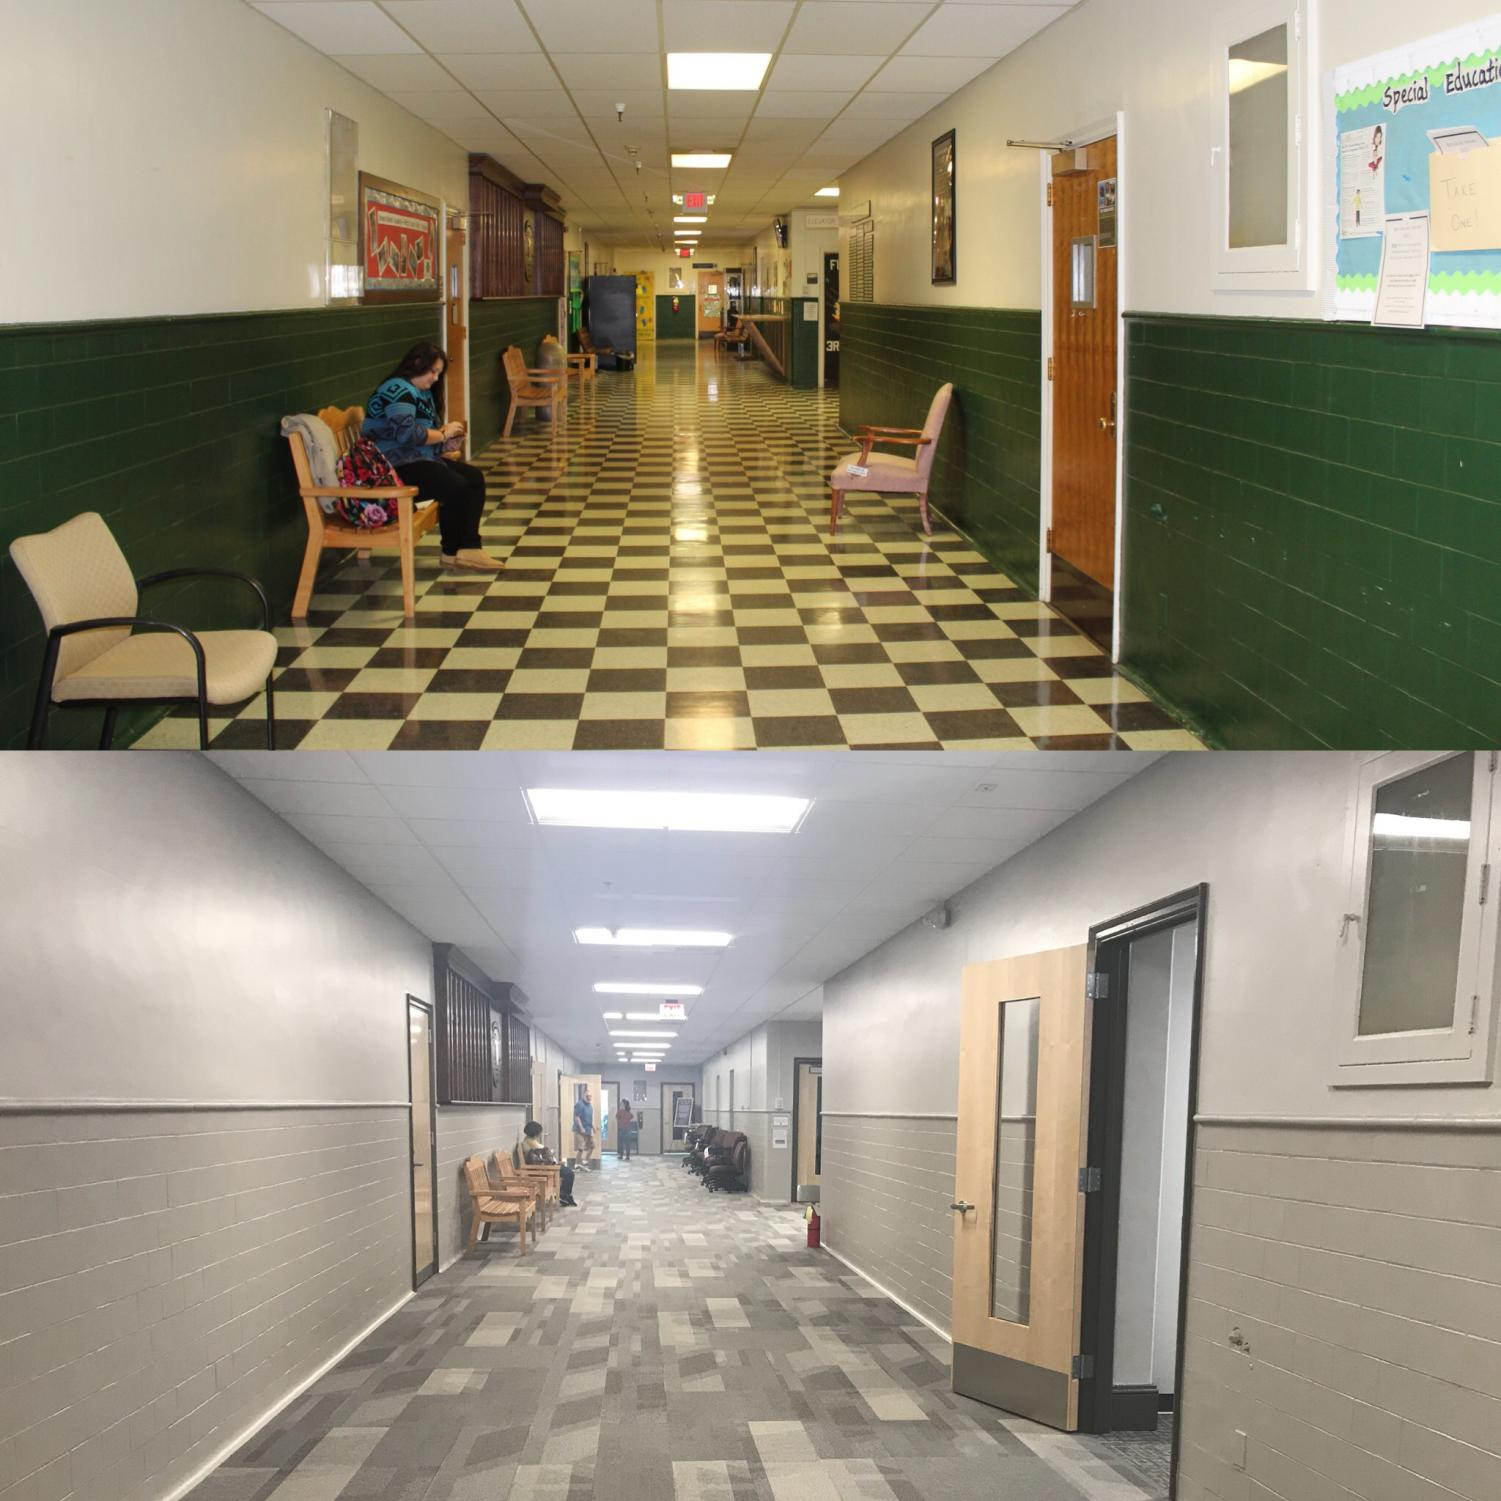 Before and after photos of the renovations done in Jenkins Hall.